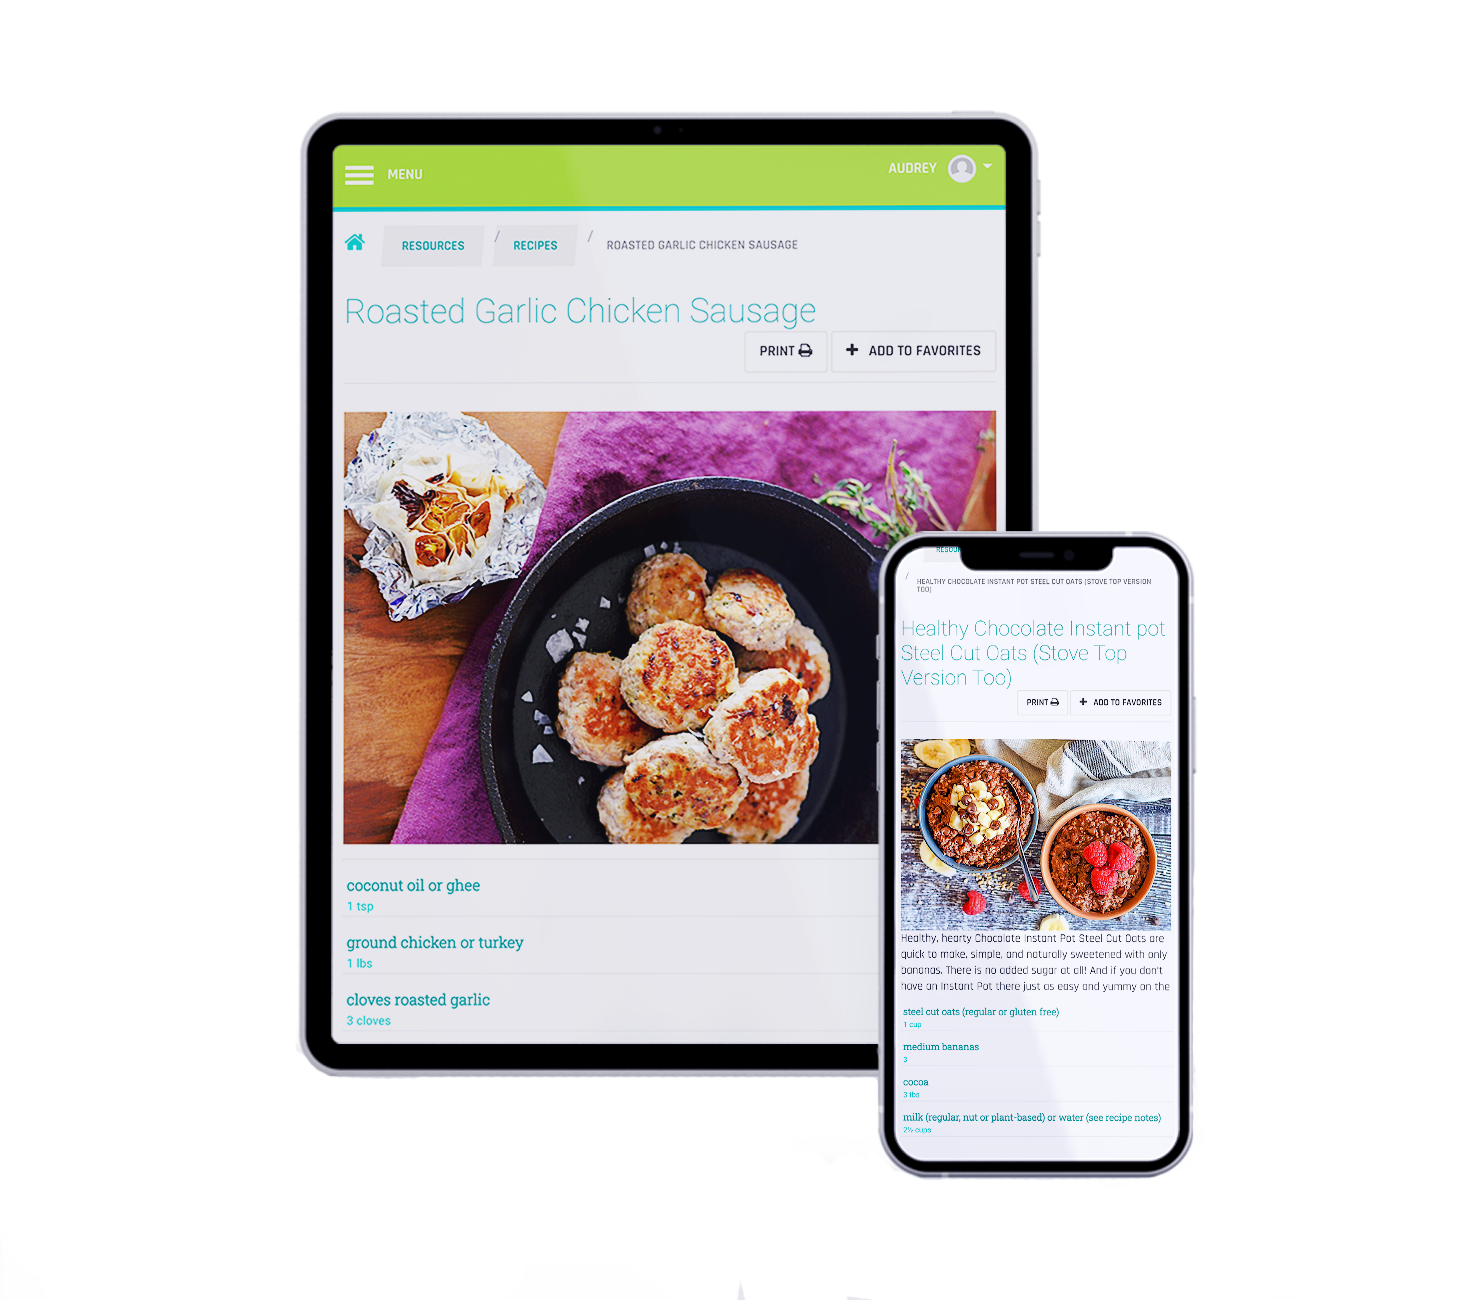 Bravo Wellness Portal On Demand Health Courses Healthy Recipes Articles And Videos